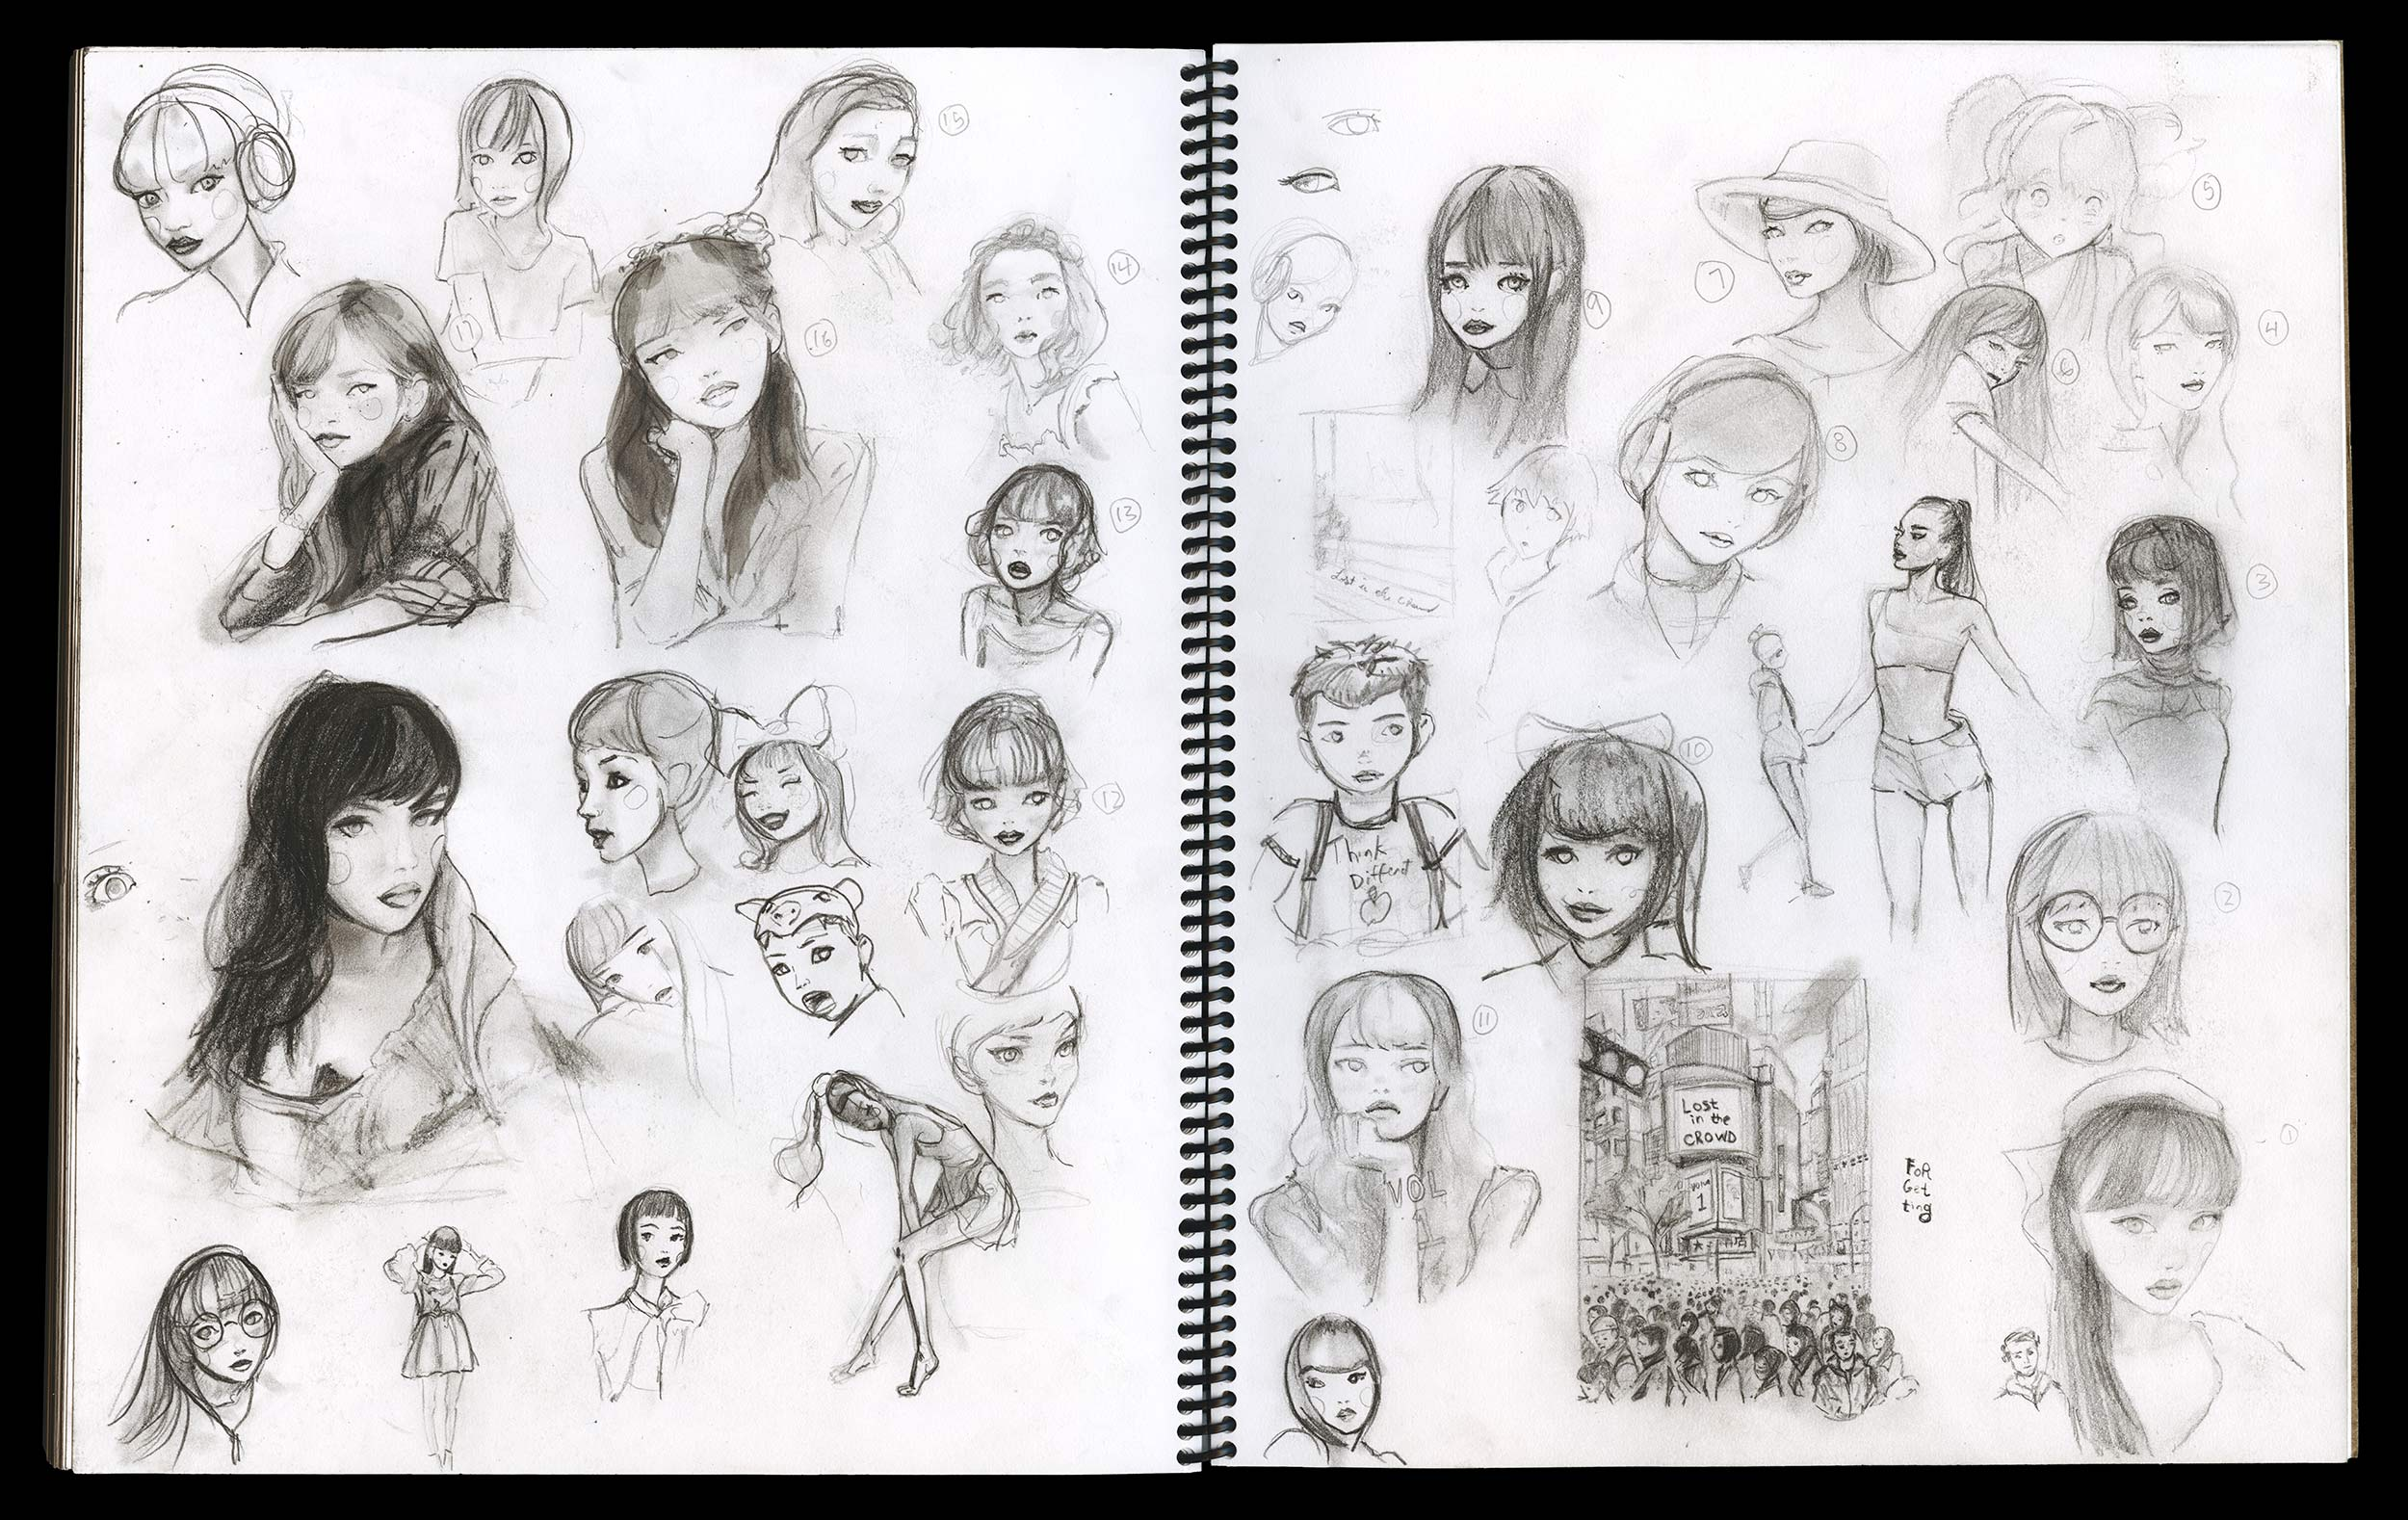 A Sketch book page of Faces by Danny Roberts. ダニー・ロバーツによるFacesのスケッチブックページ。